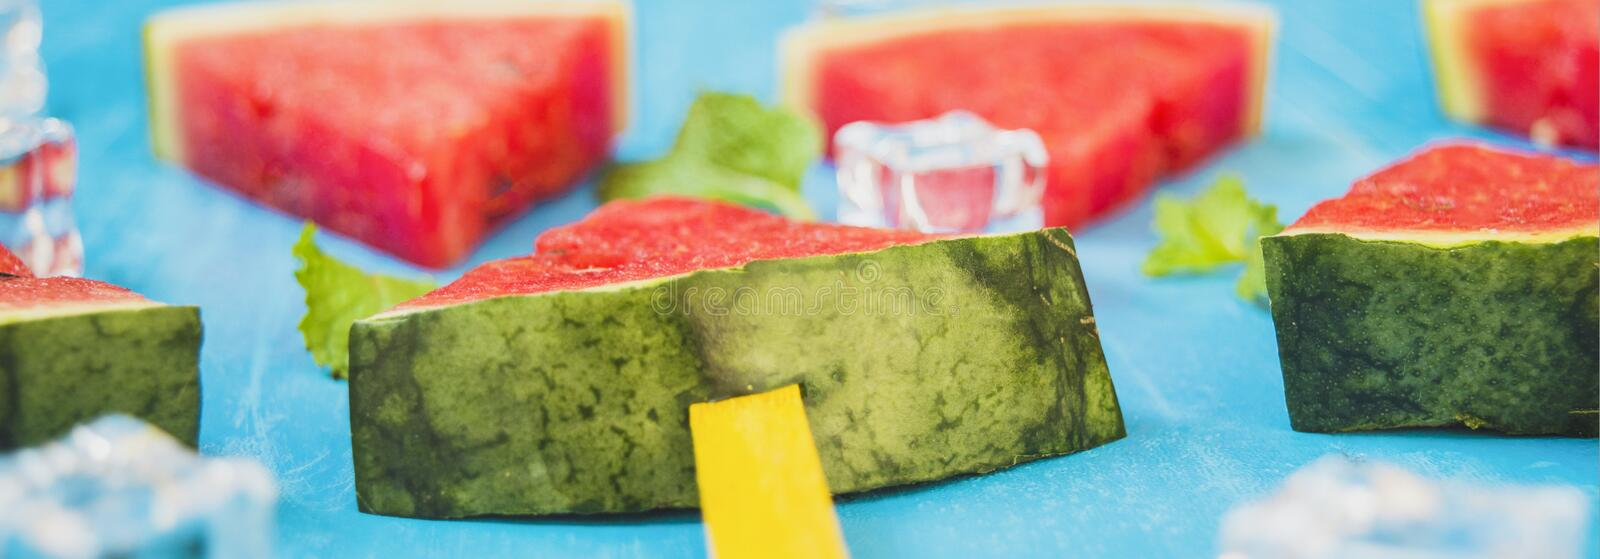 Watermelon slices and mint on bright and ice blue wood background,concept organic fruit  non-toxic for health,for refreshing and. Fun in summer,baner panoramic stock photo